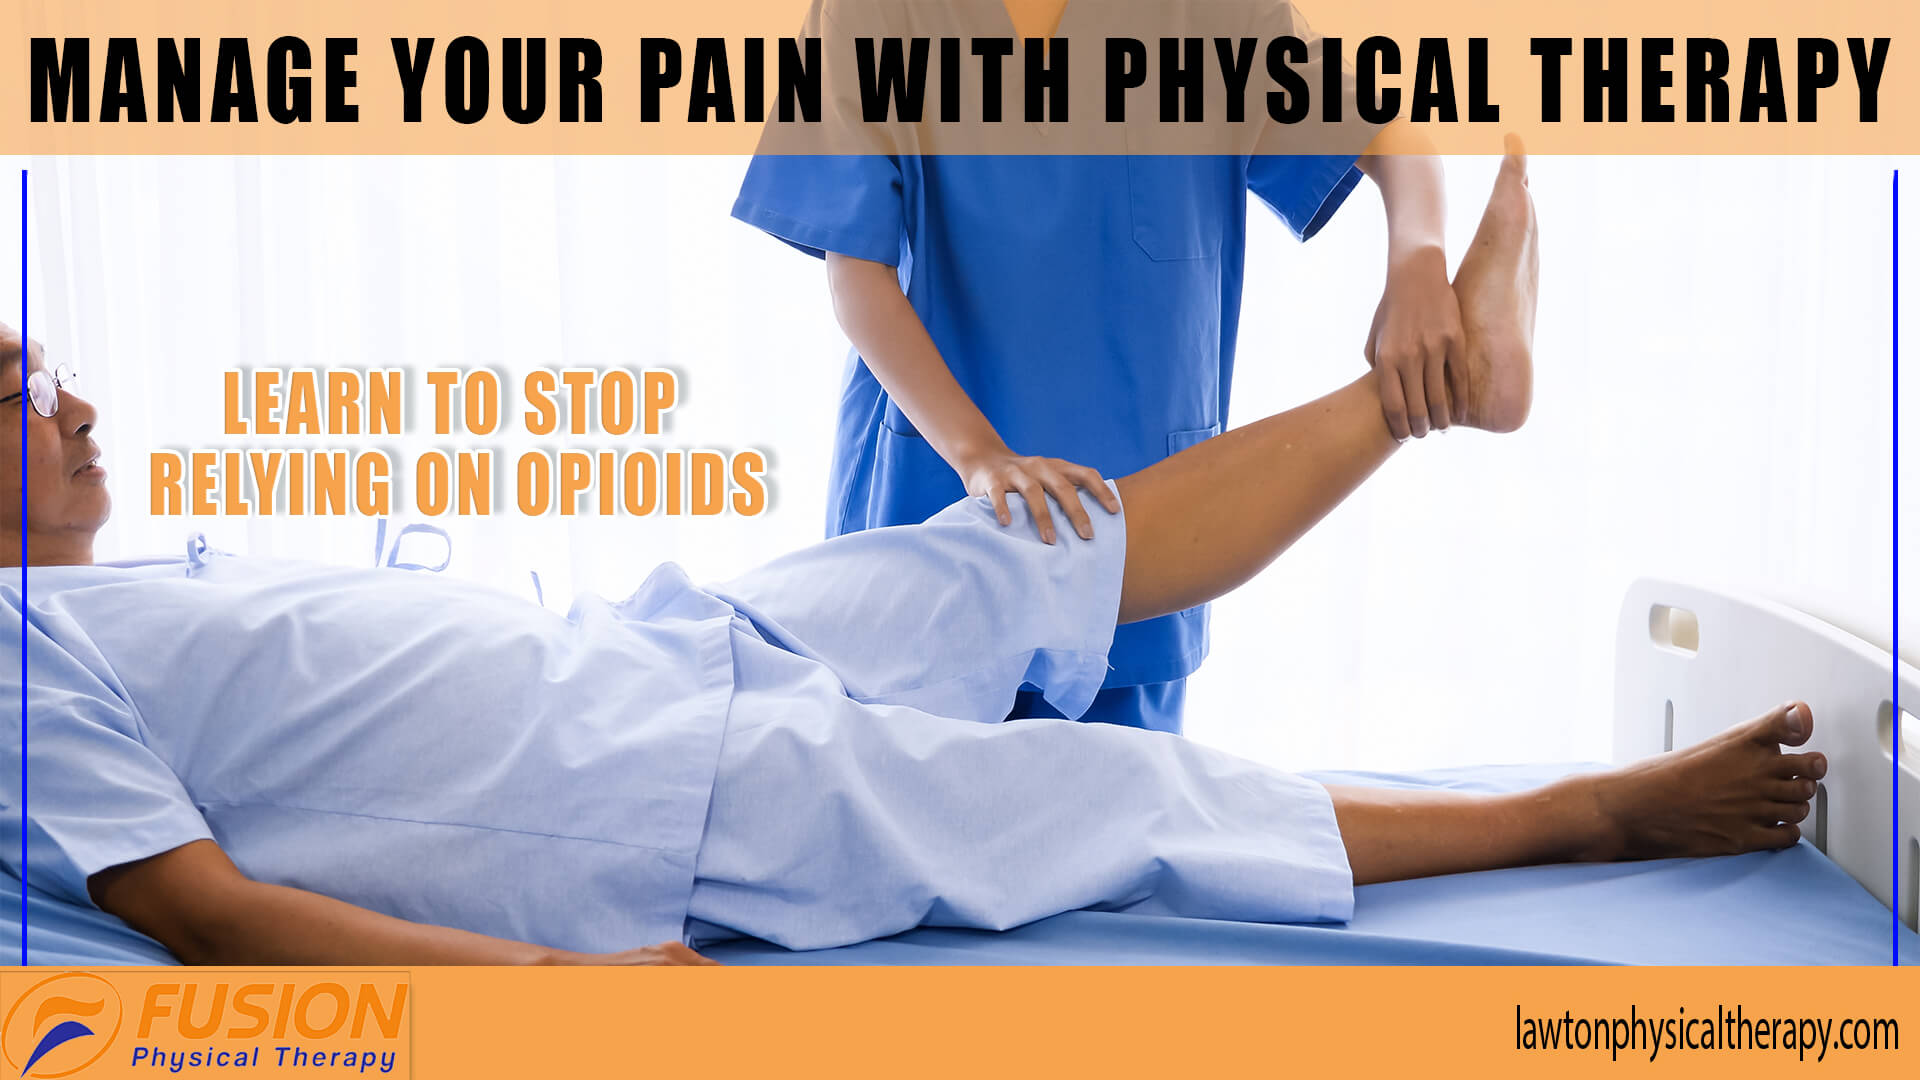 Manage Your Pain with Physical Therapy – Learn to Stop Relying on Opioids